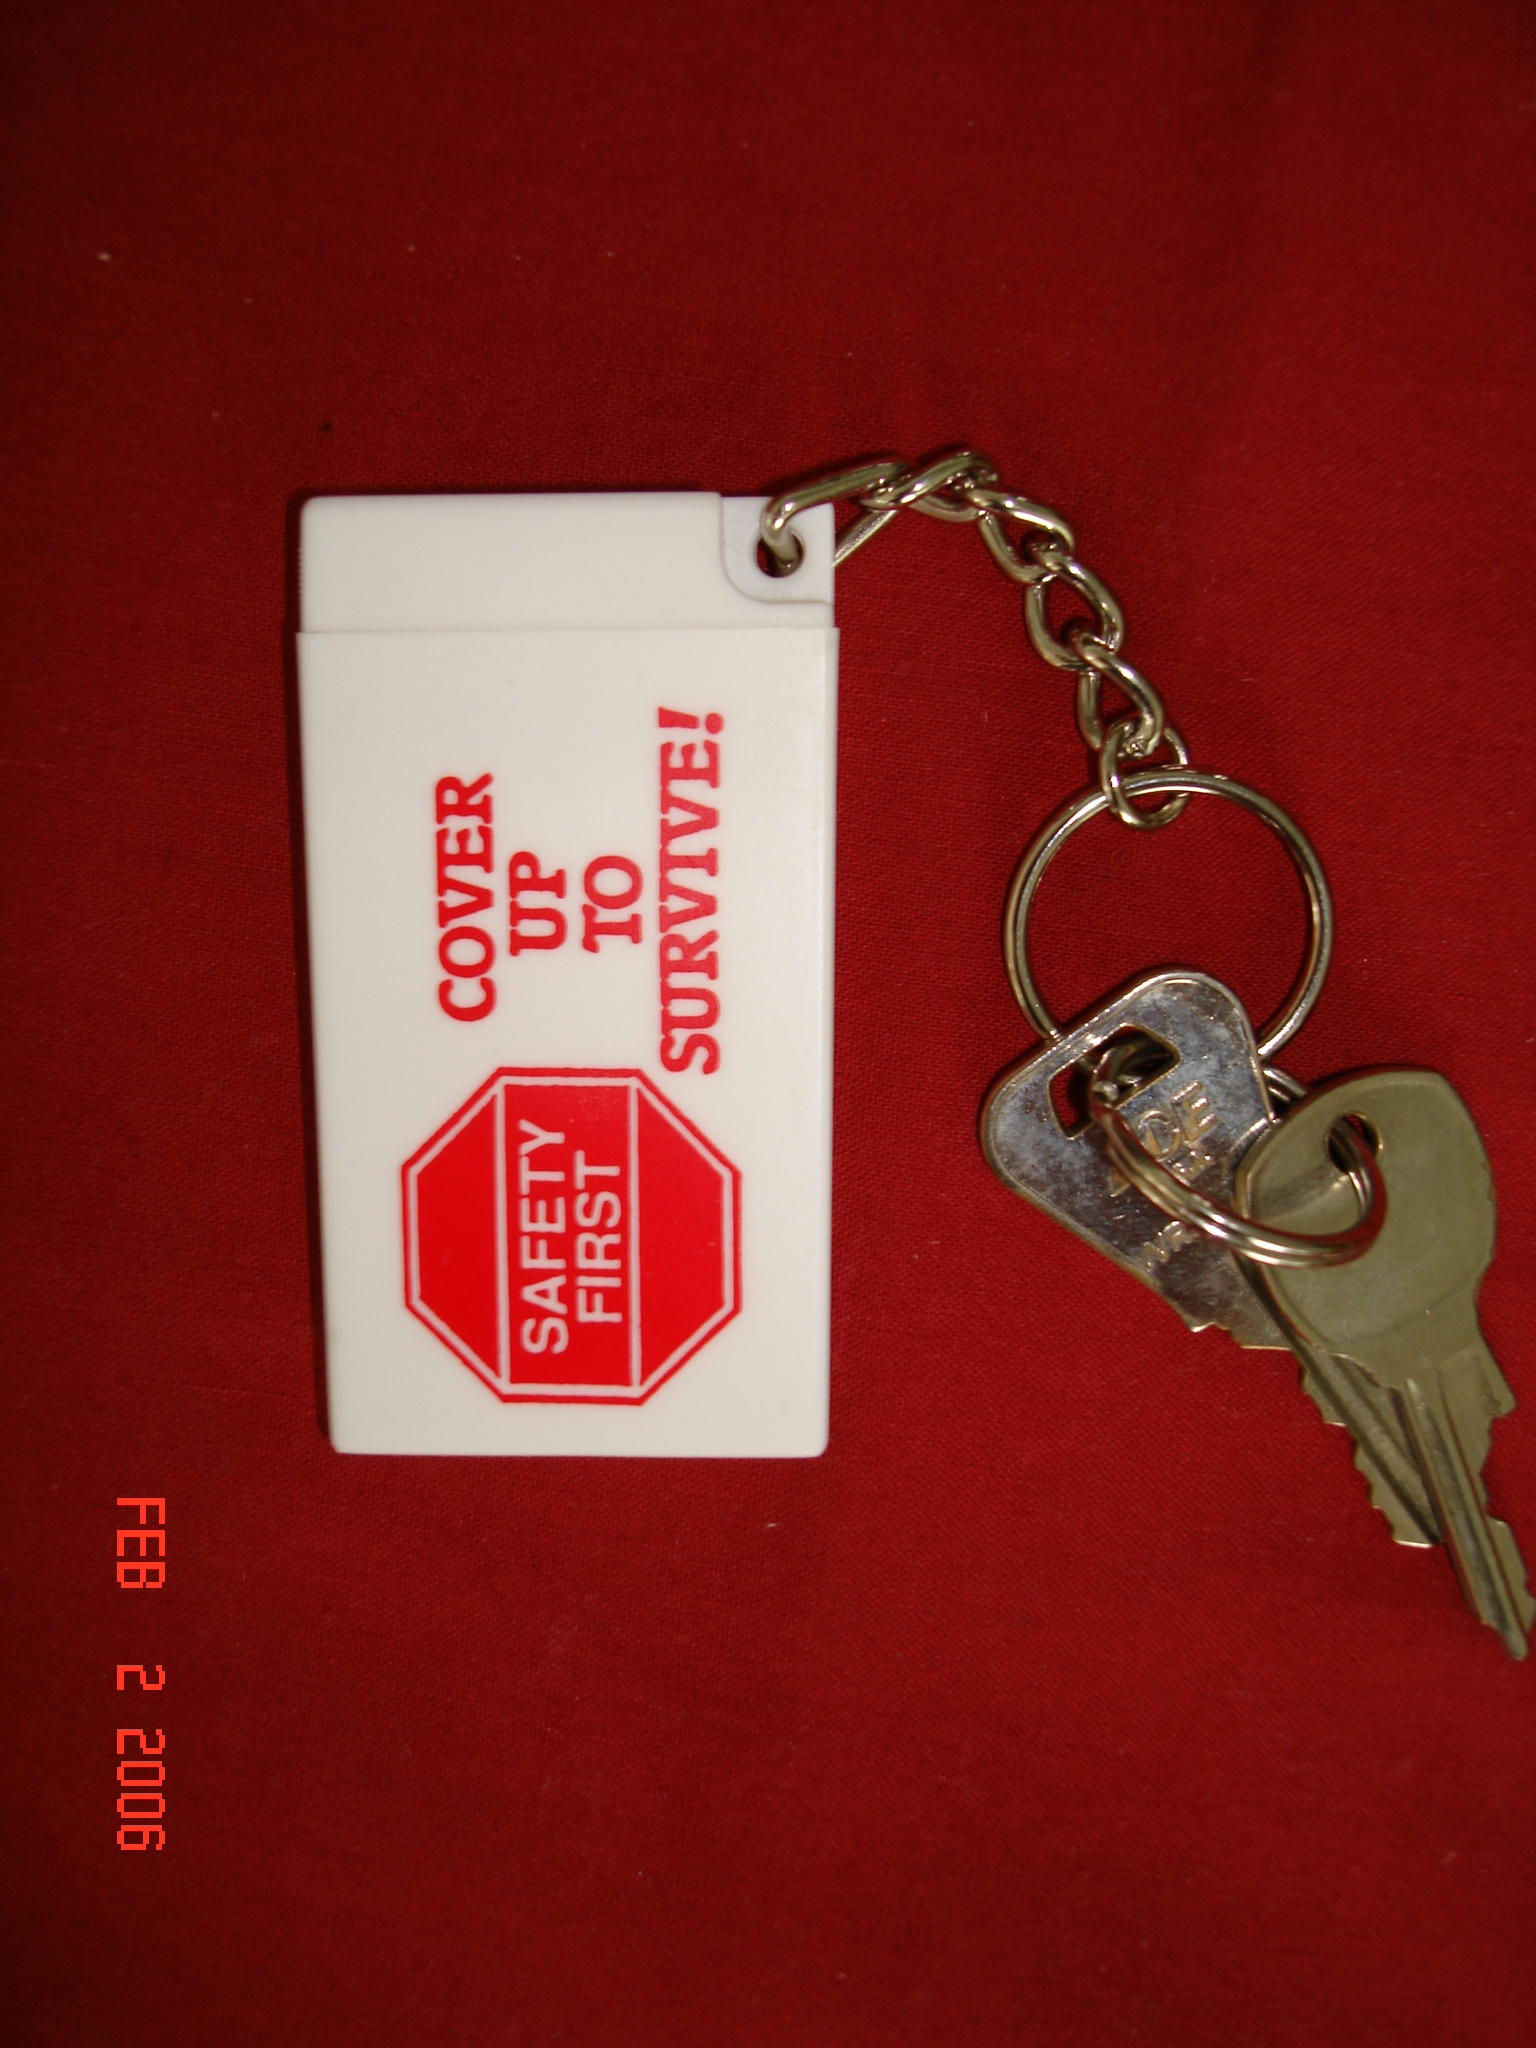 TAKE THE TEST - Condom Key Chain